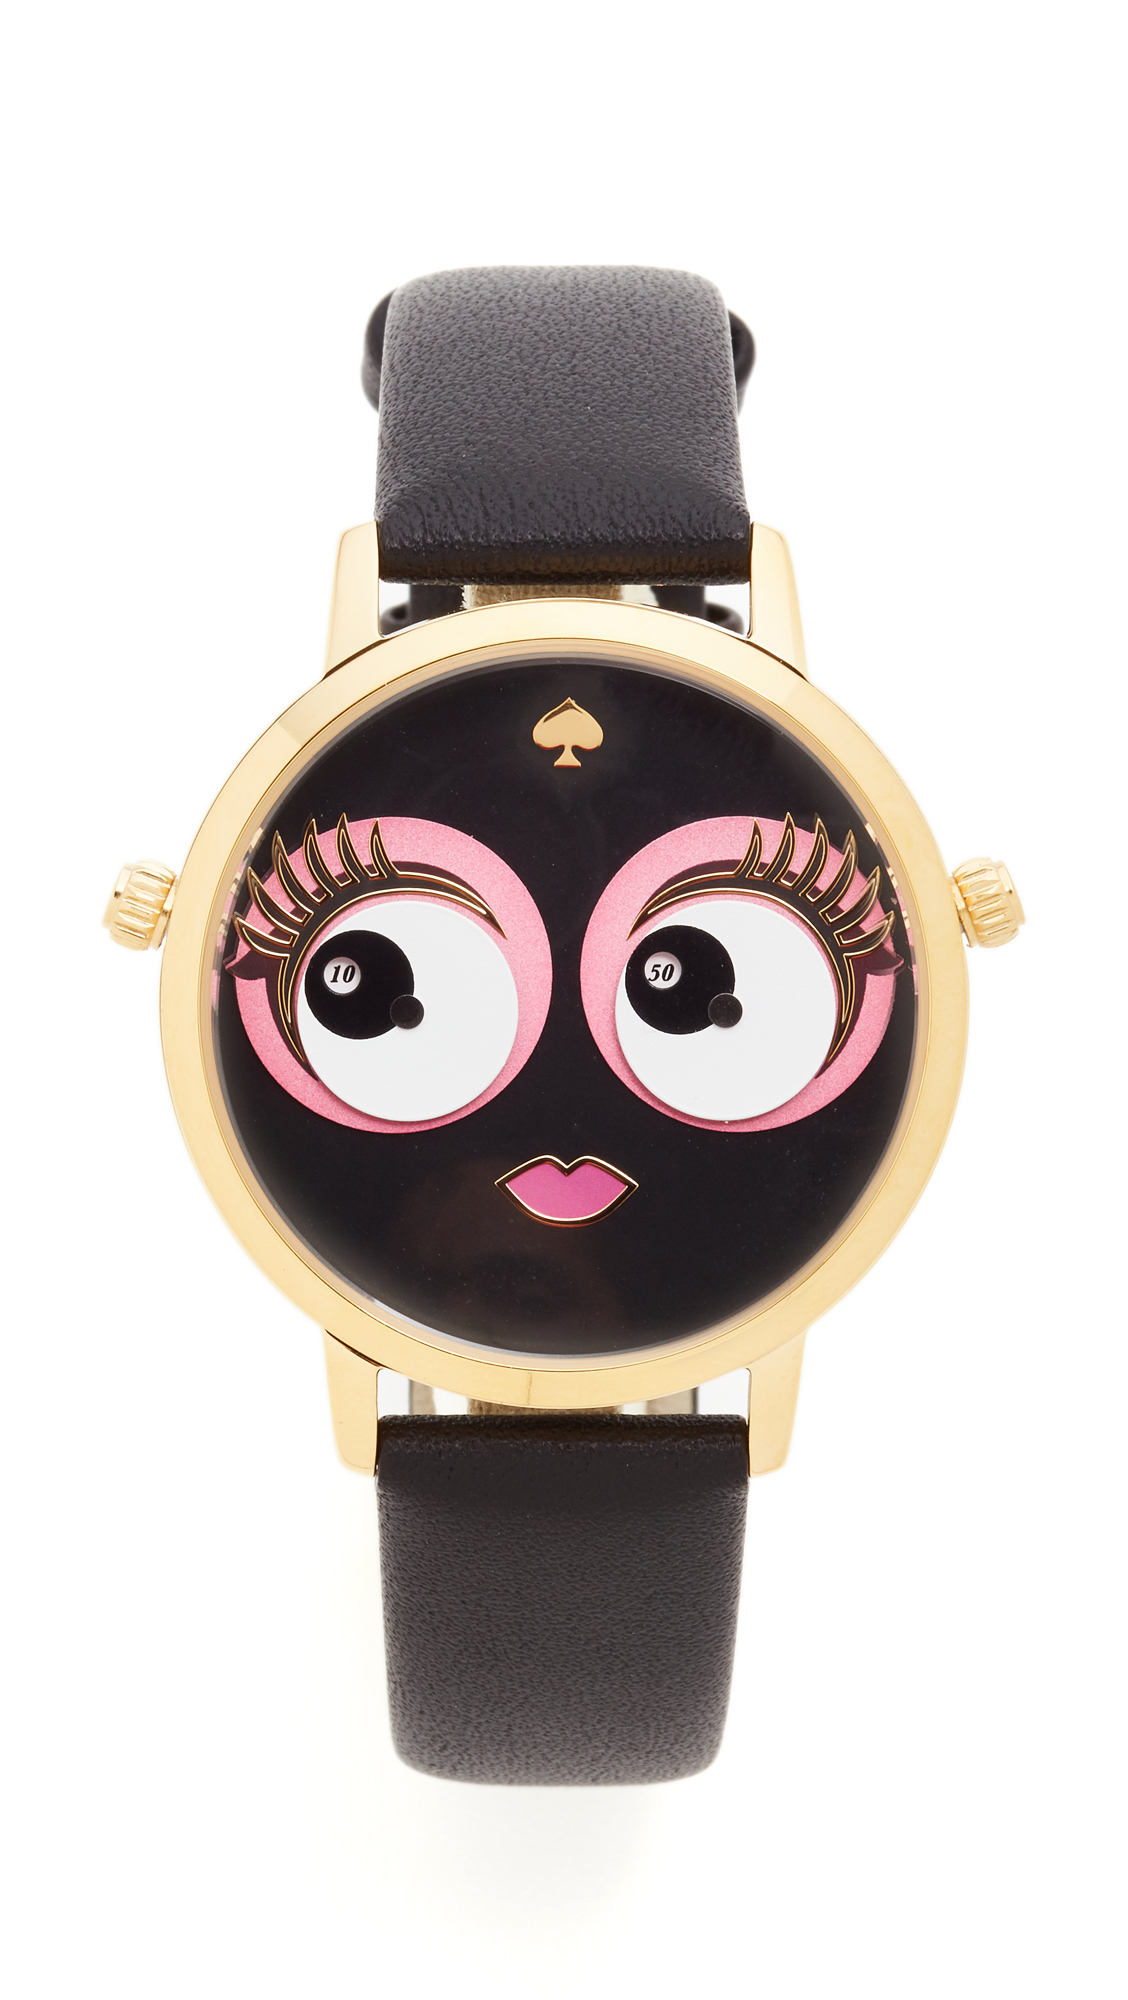 Kate Spade New York Metro Novelty Watch - Multi/Gold at Shopbop